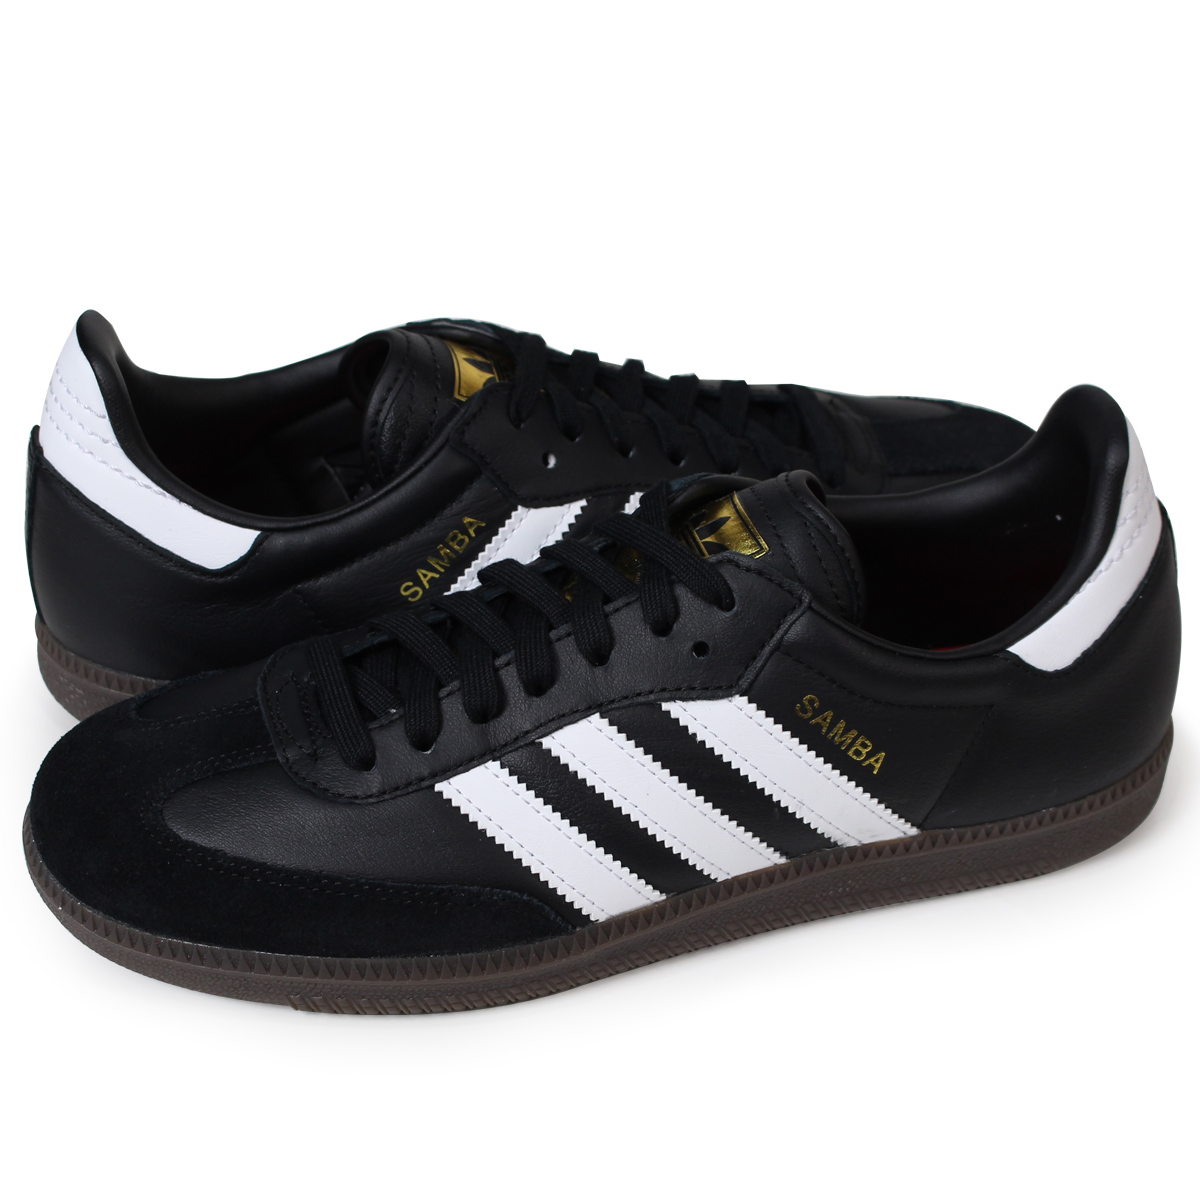 adidas Originals SAMBA FB Adidas samba sneakers men CQ2094 black originals [419 Shinnyu load] [184]